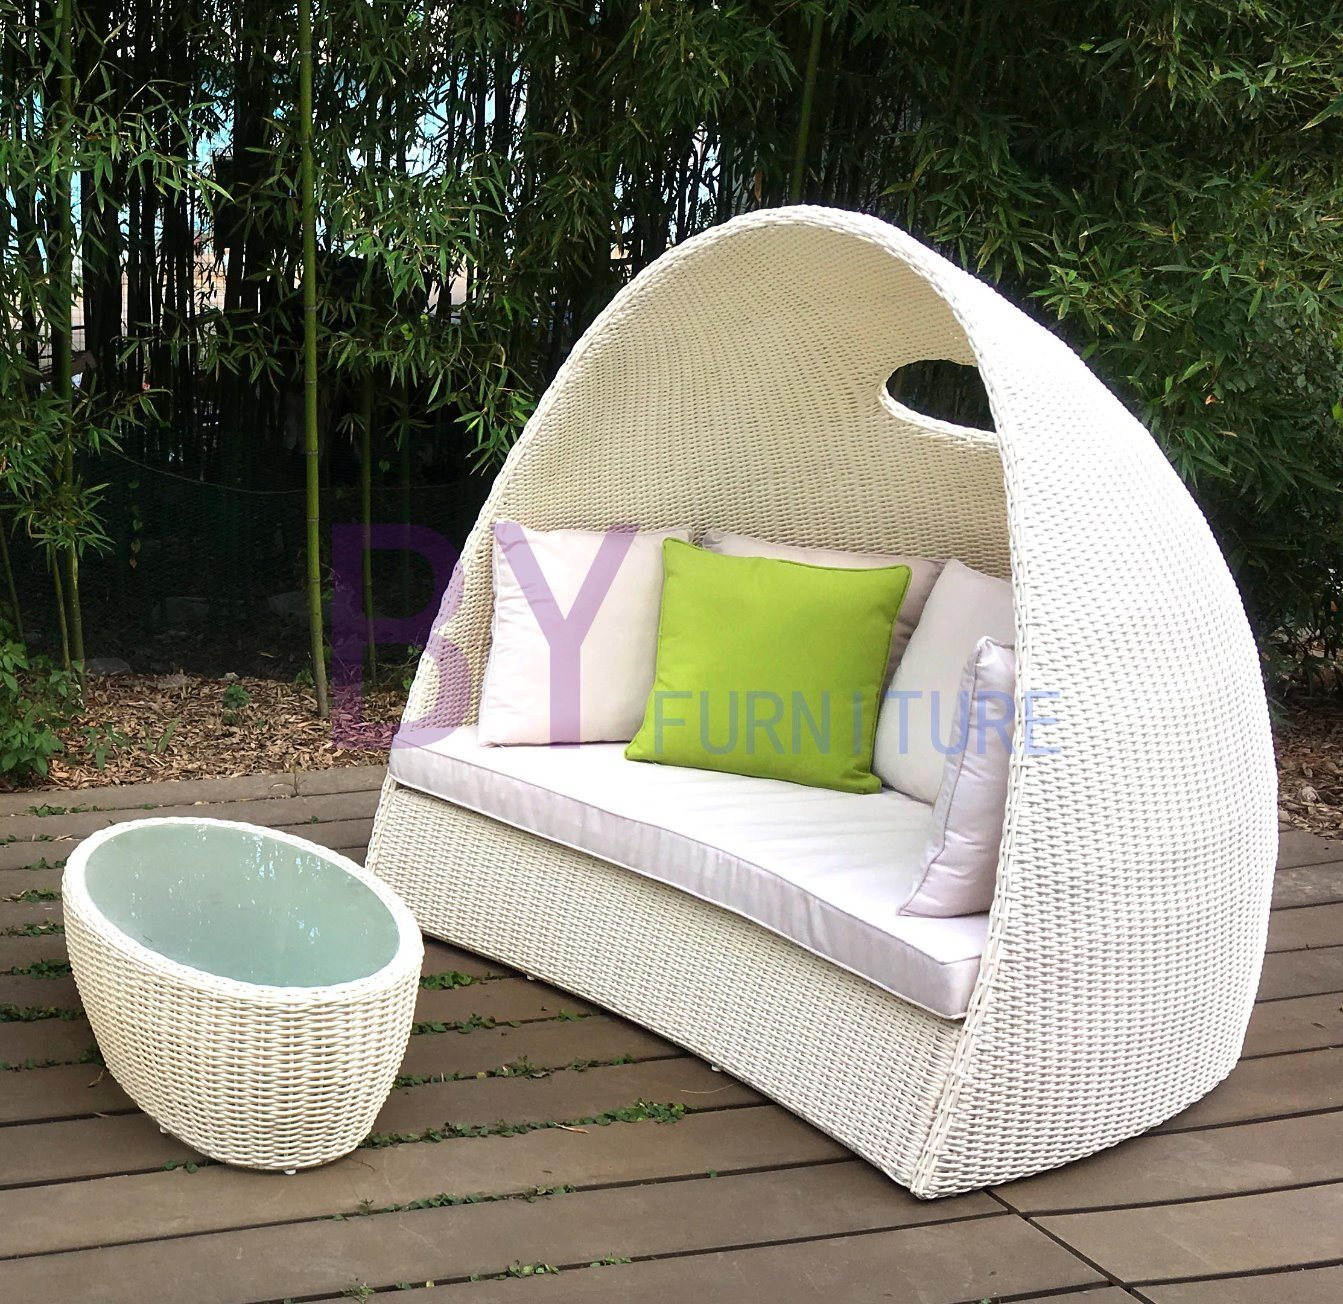 Amazing Hot Item Italian Furniture Unique Design Curved White Rattan Daybed Caraccident5 Cool Chair Designs And Ideas Caraccident5Info